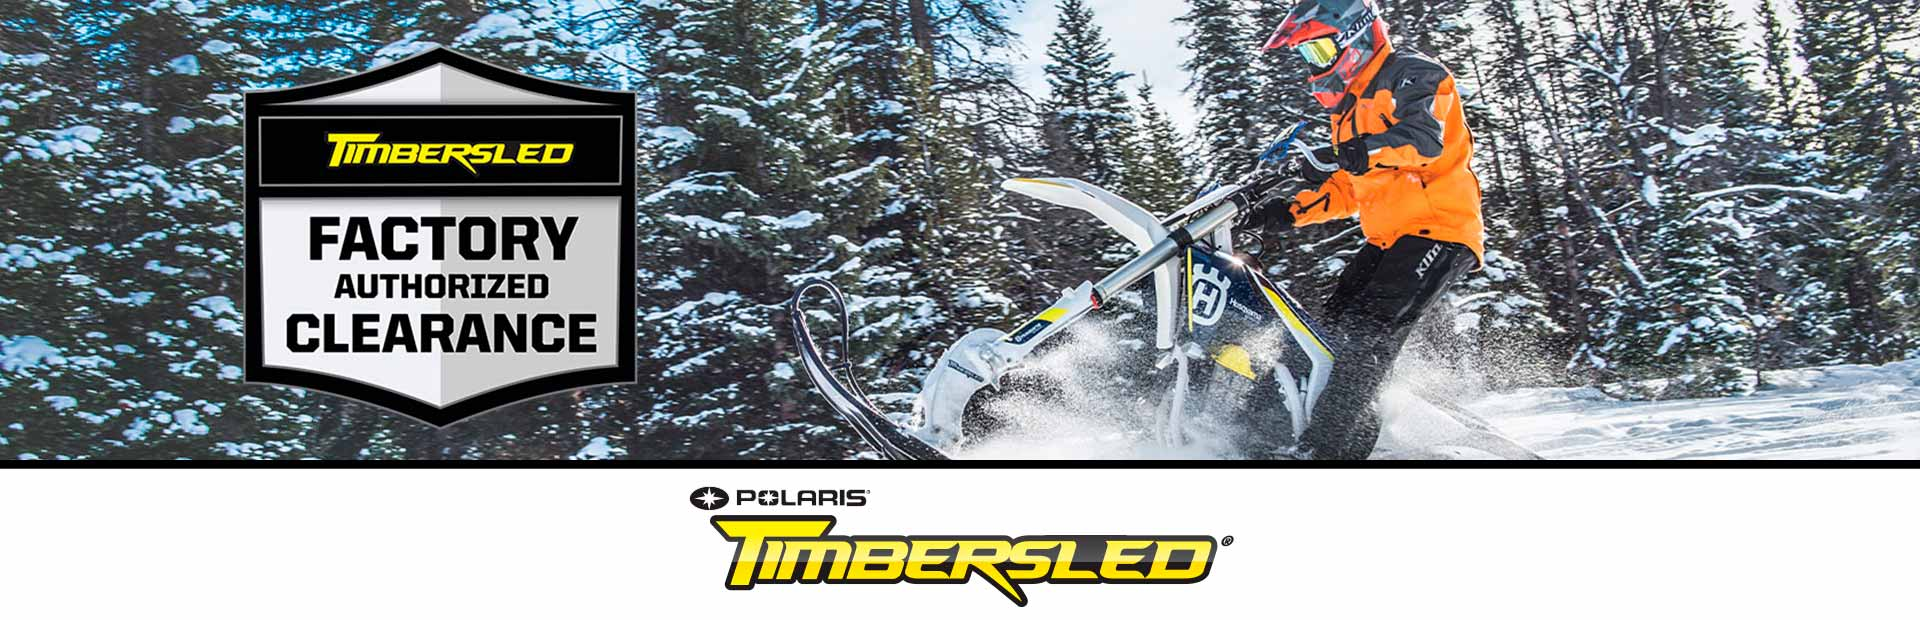 Timbersled: FACTORY AUTHORIZED CLEARANCE